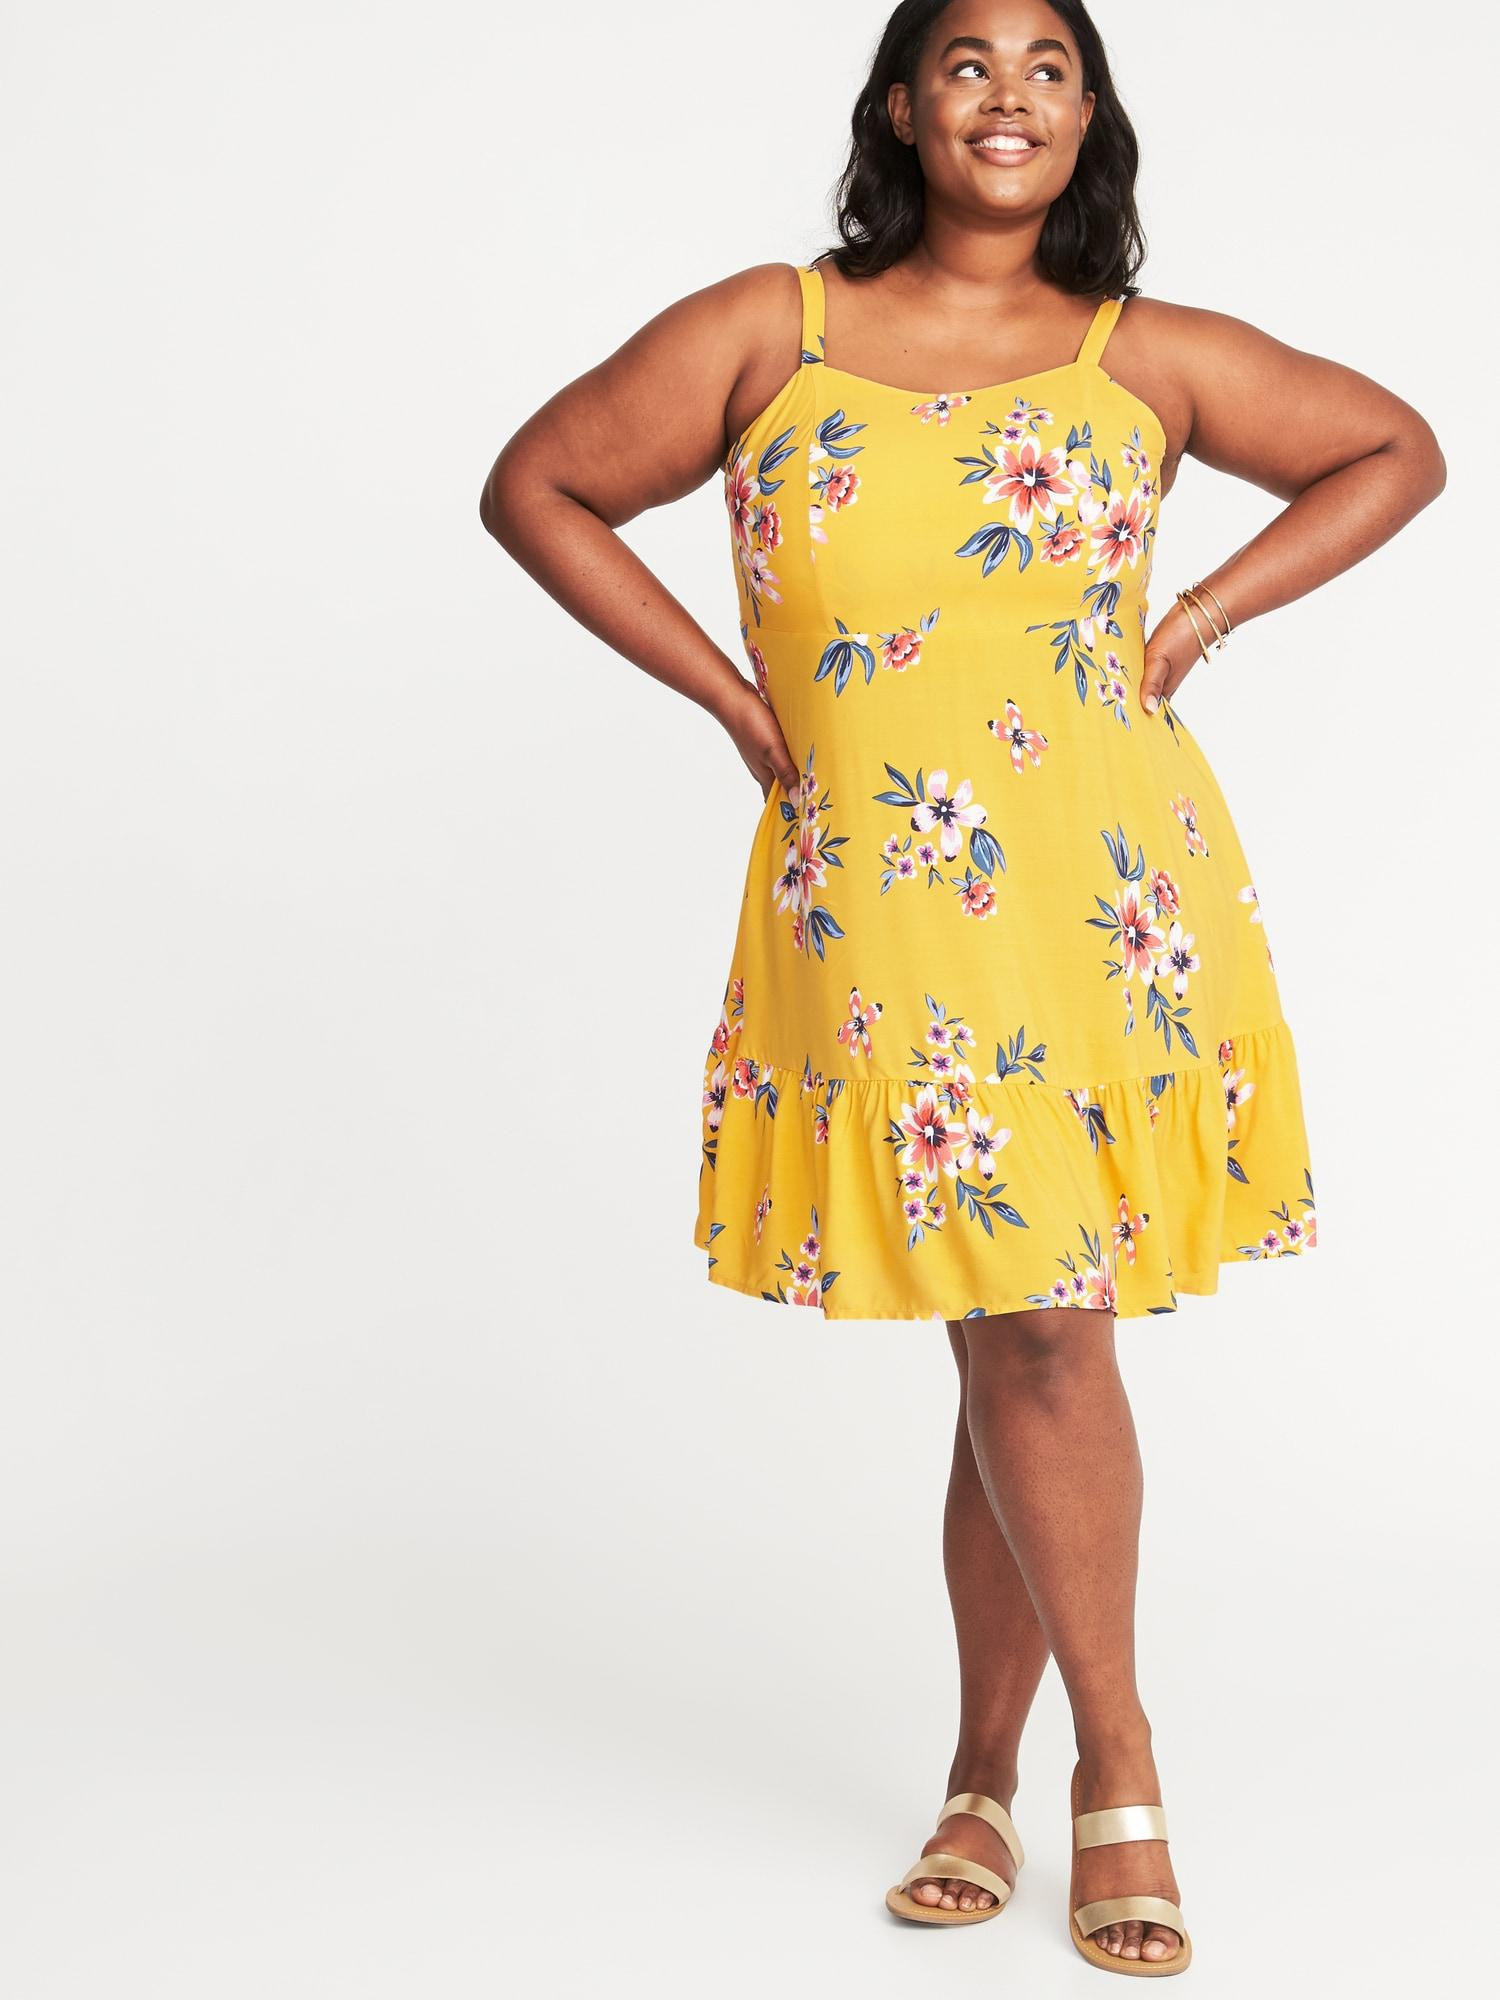 Old Navy Plus-size Fit & Flare Cami Dress in Yellow - Lyst